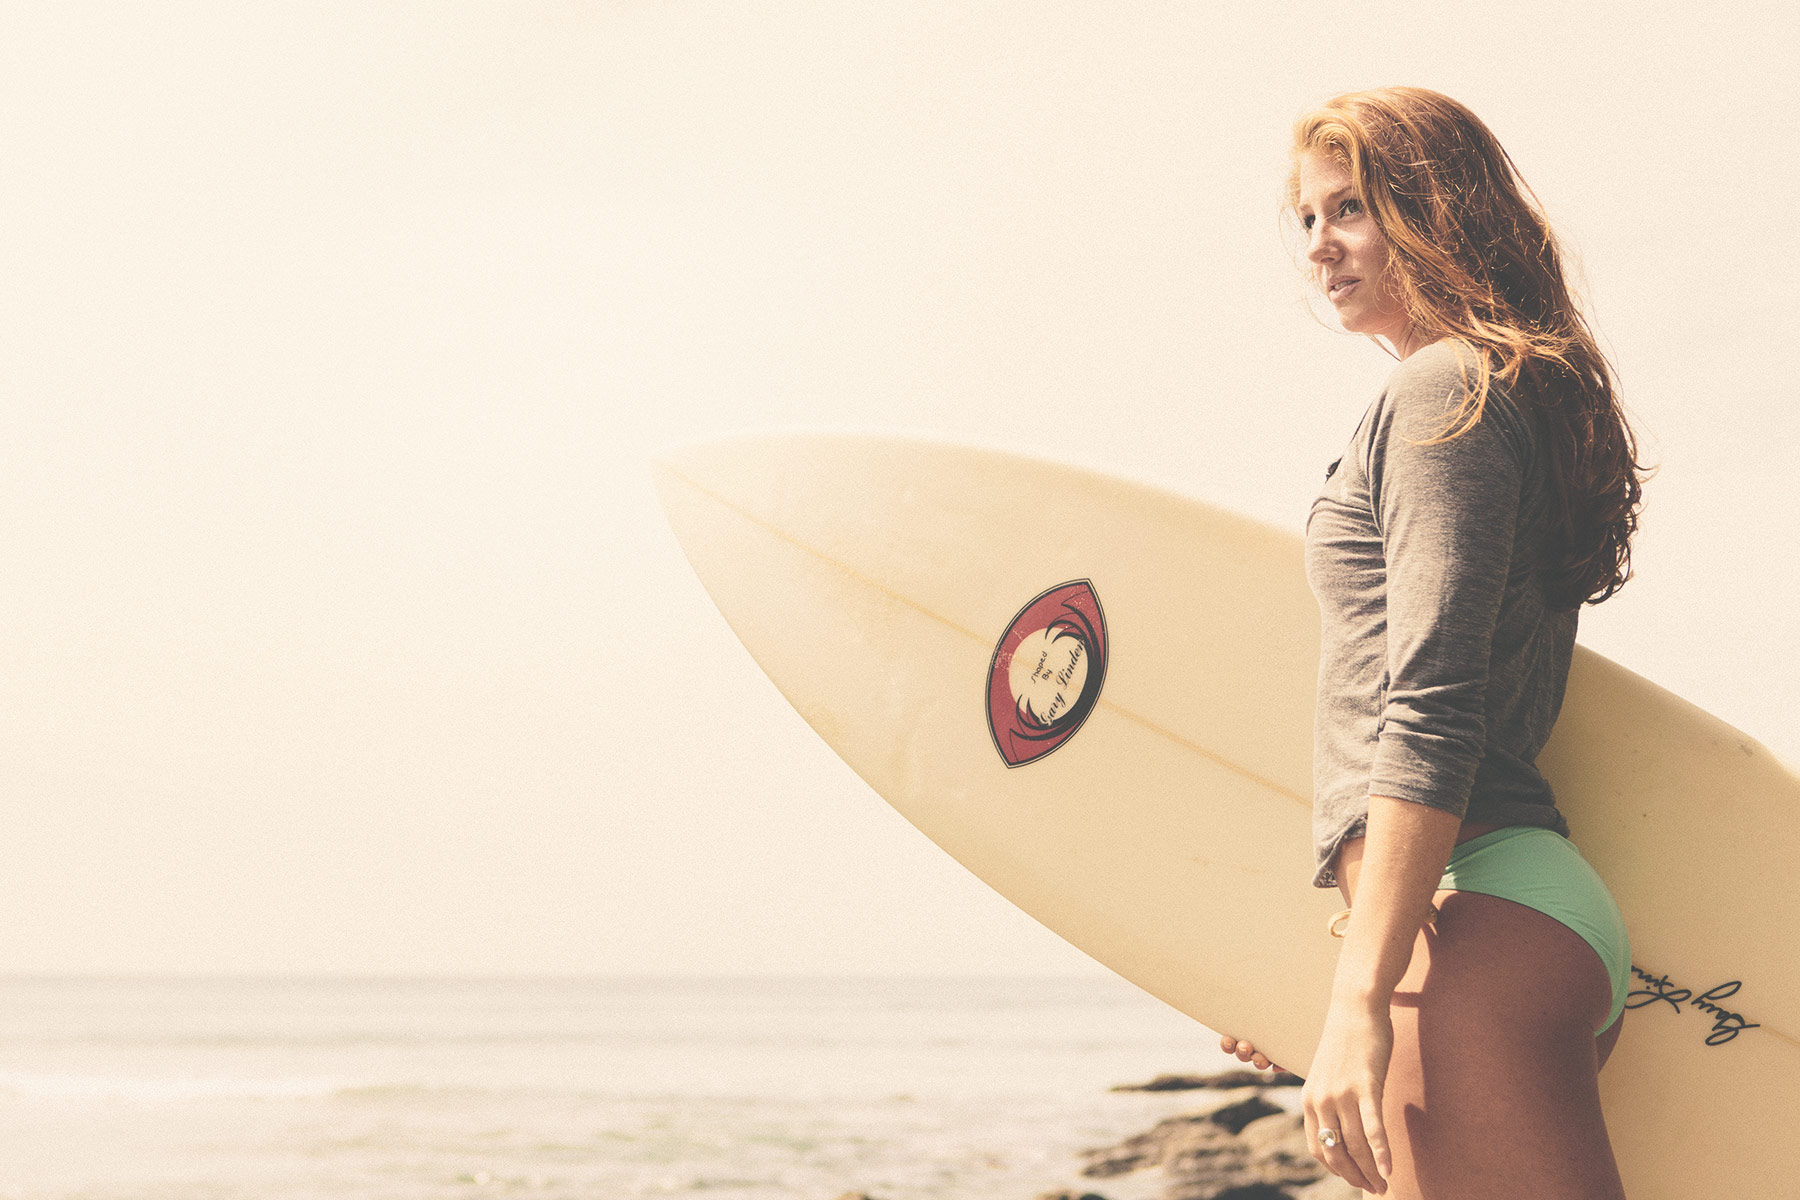 Surfer Girl Stands with Her Board | Zach Ancell Photography